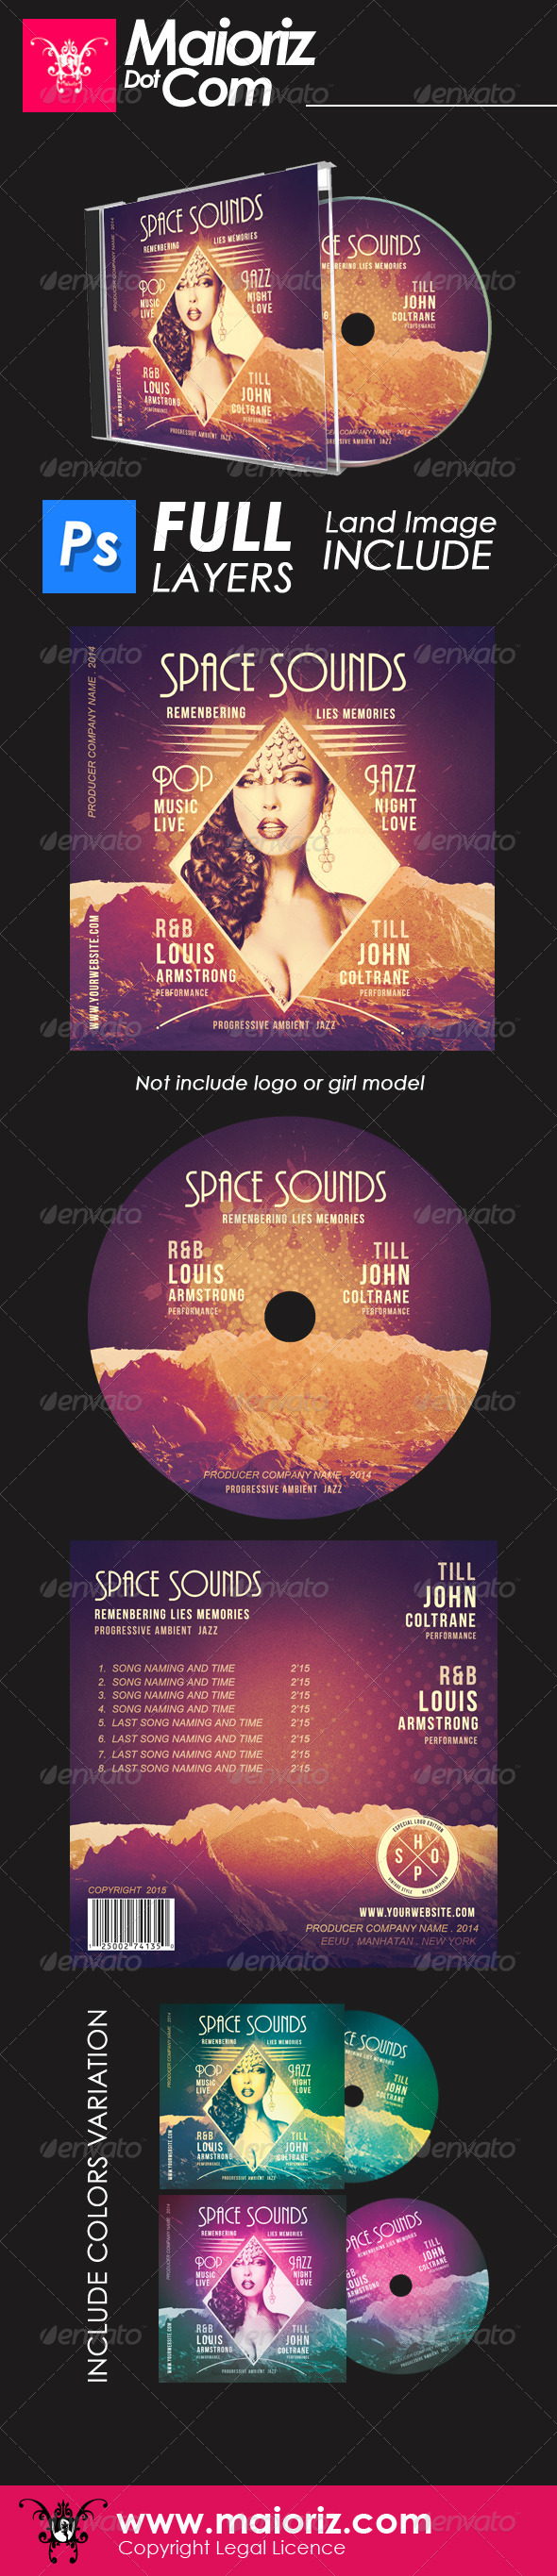 Space Sounds Cd Artwork - CD & DVD Artwork Print Templates